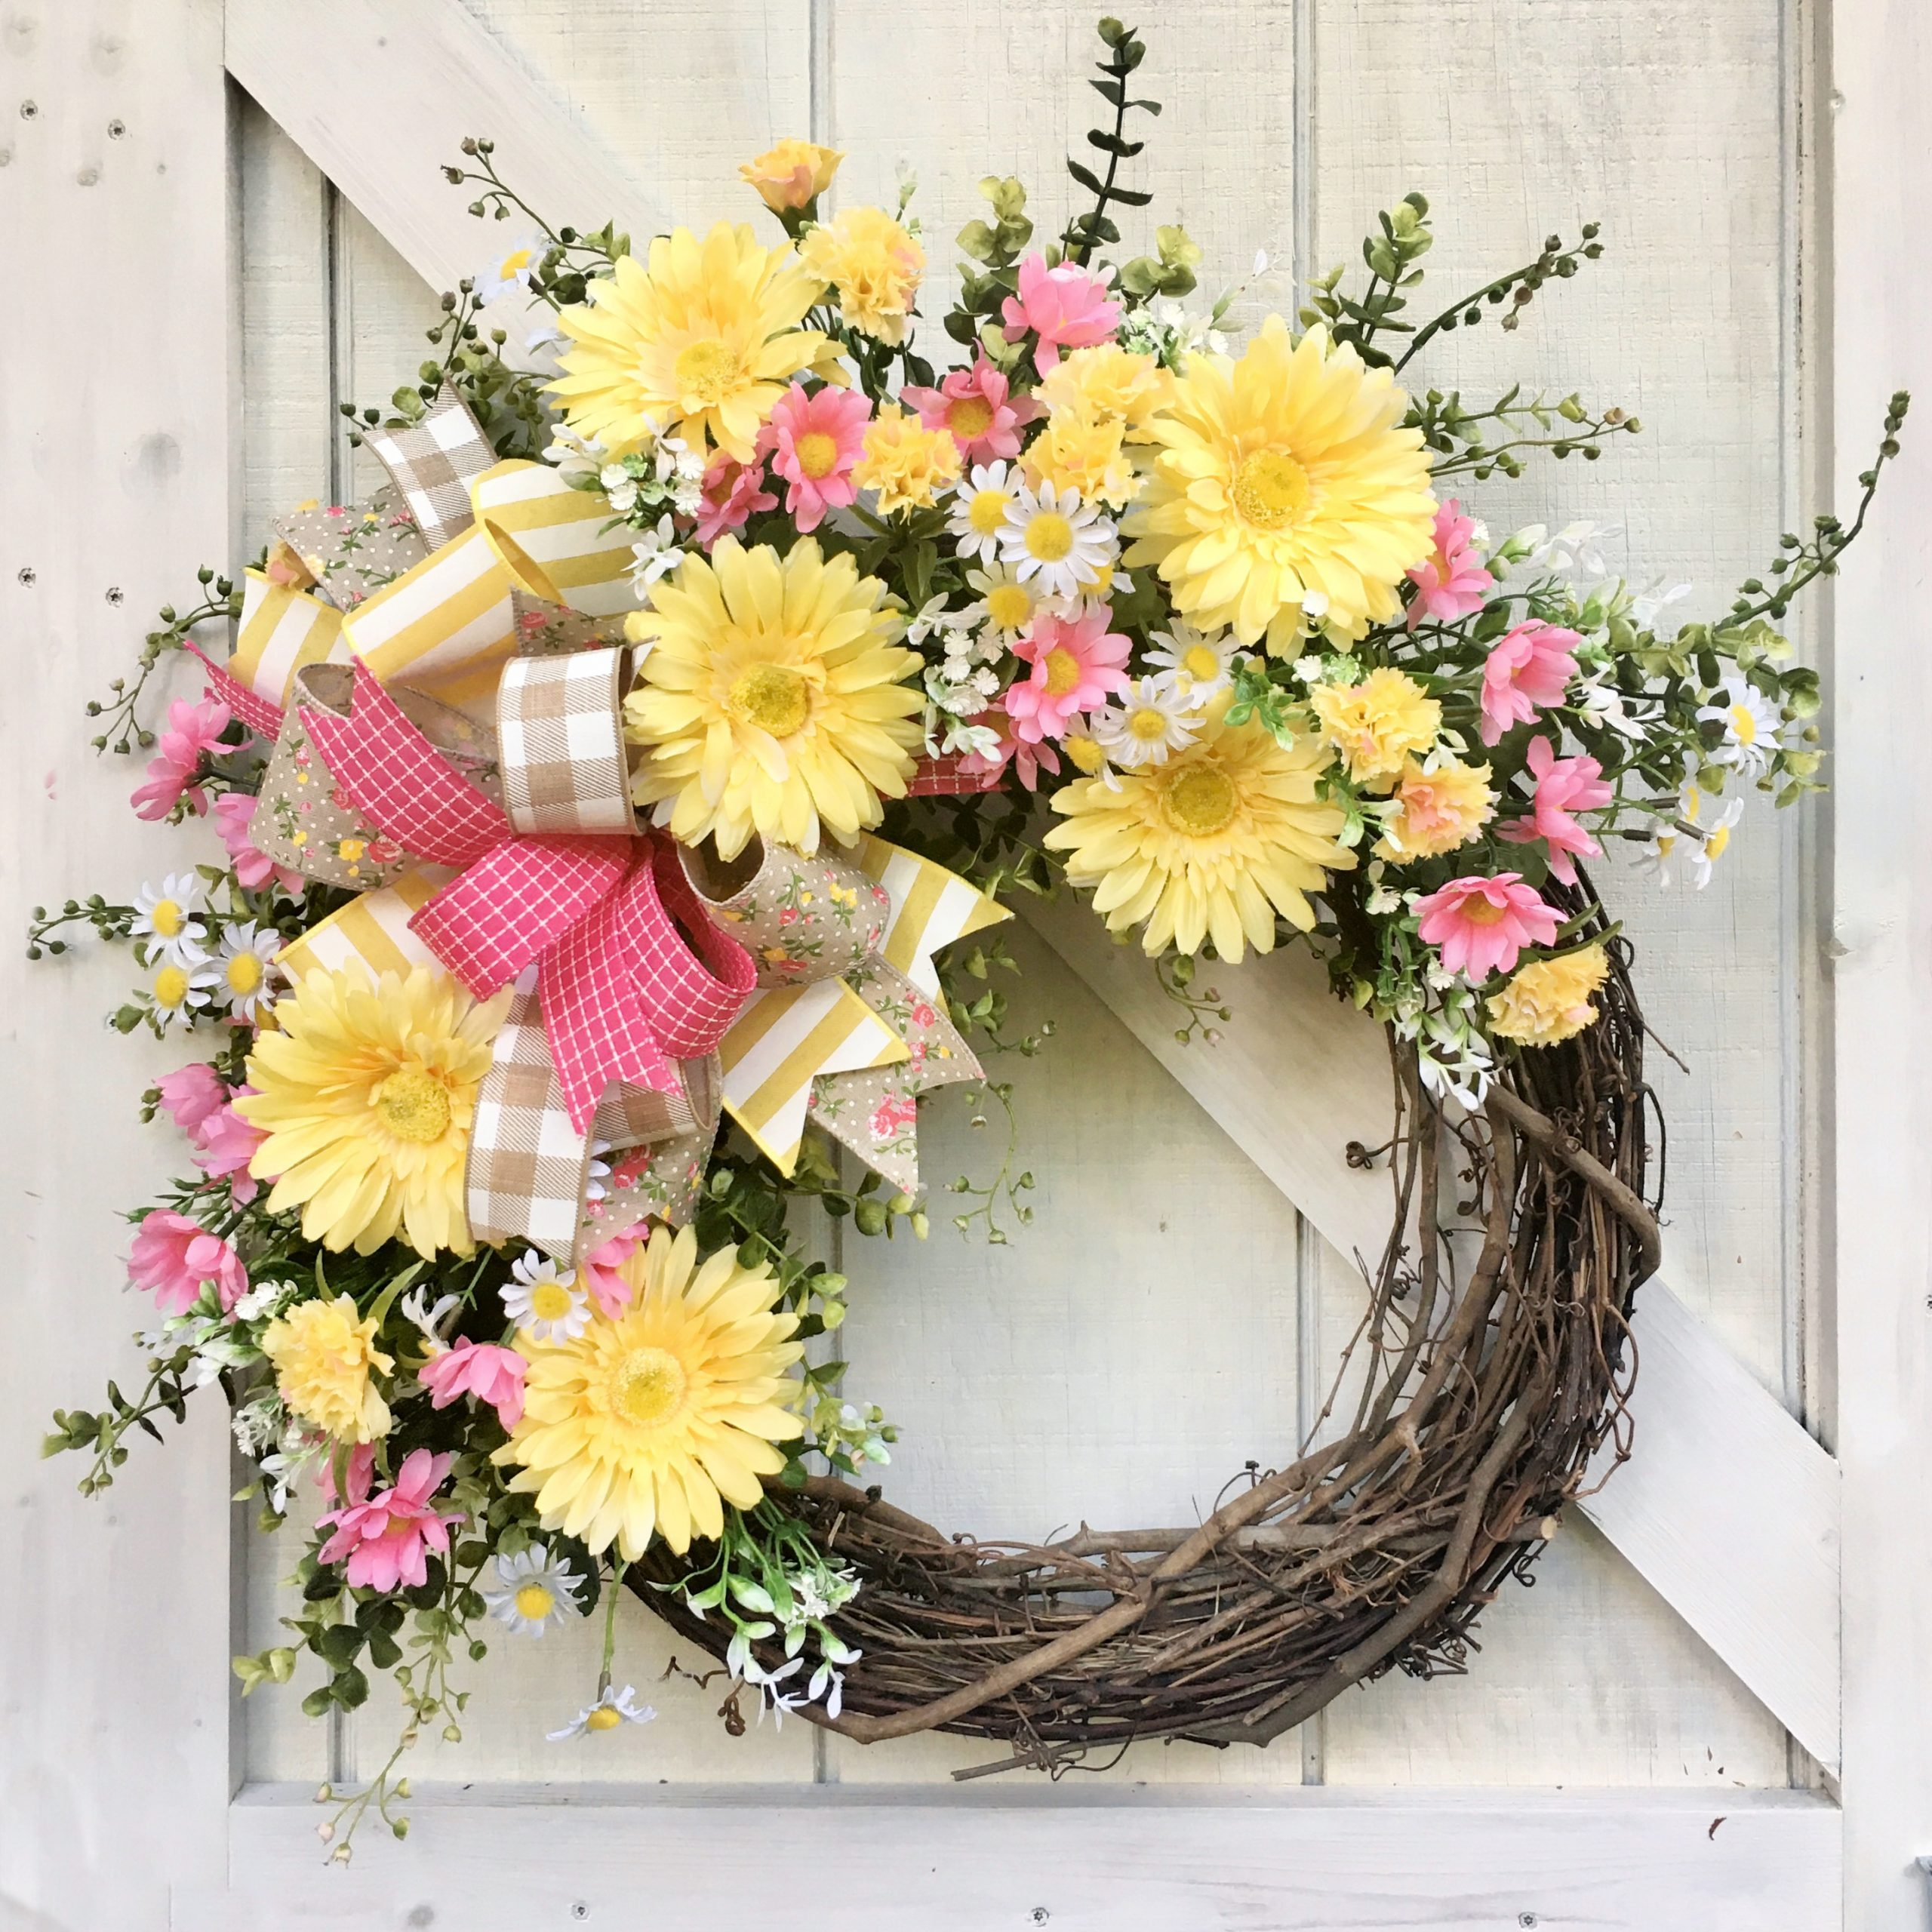 Pink and Yellow Grapevine Wreath for Summer